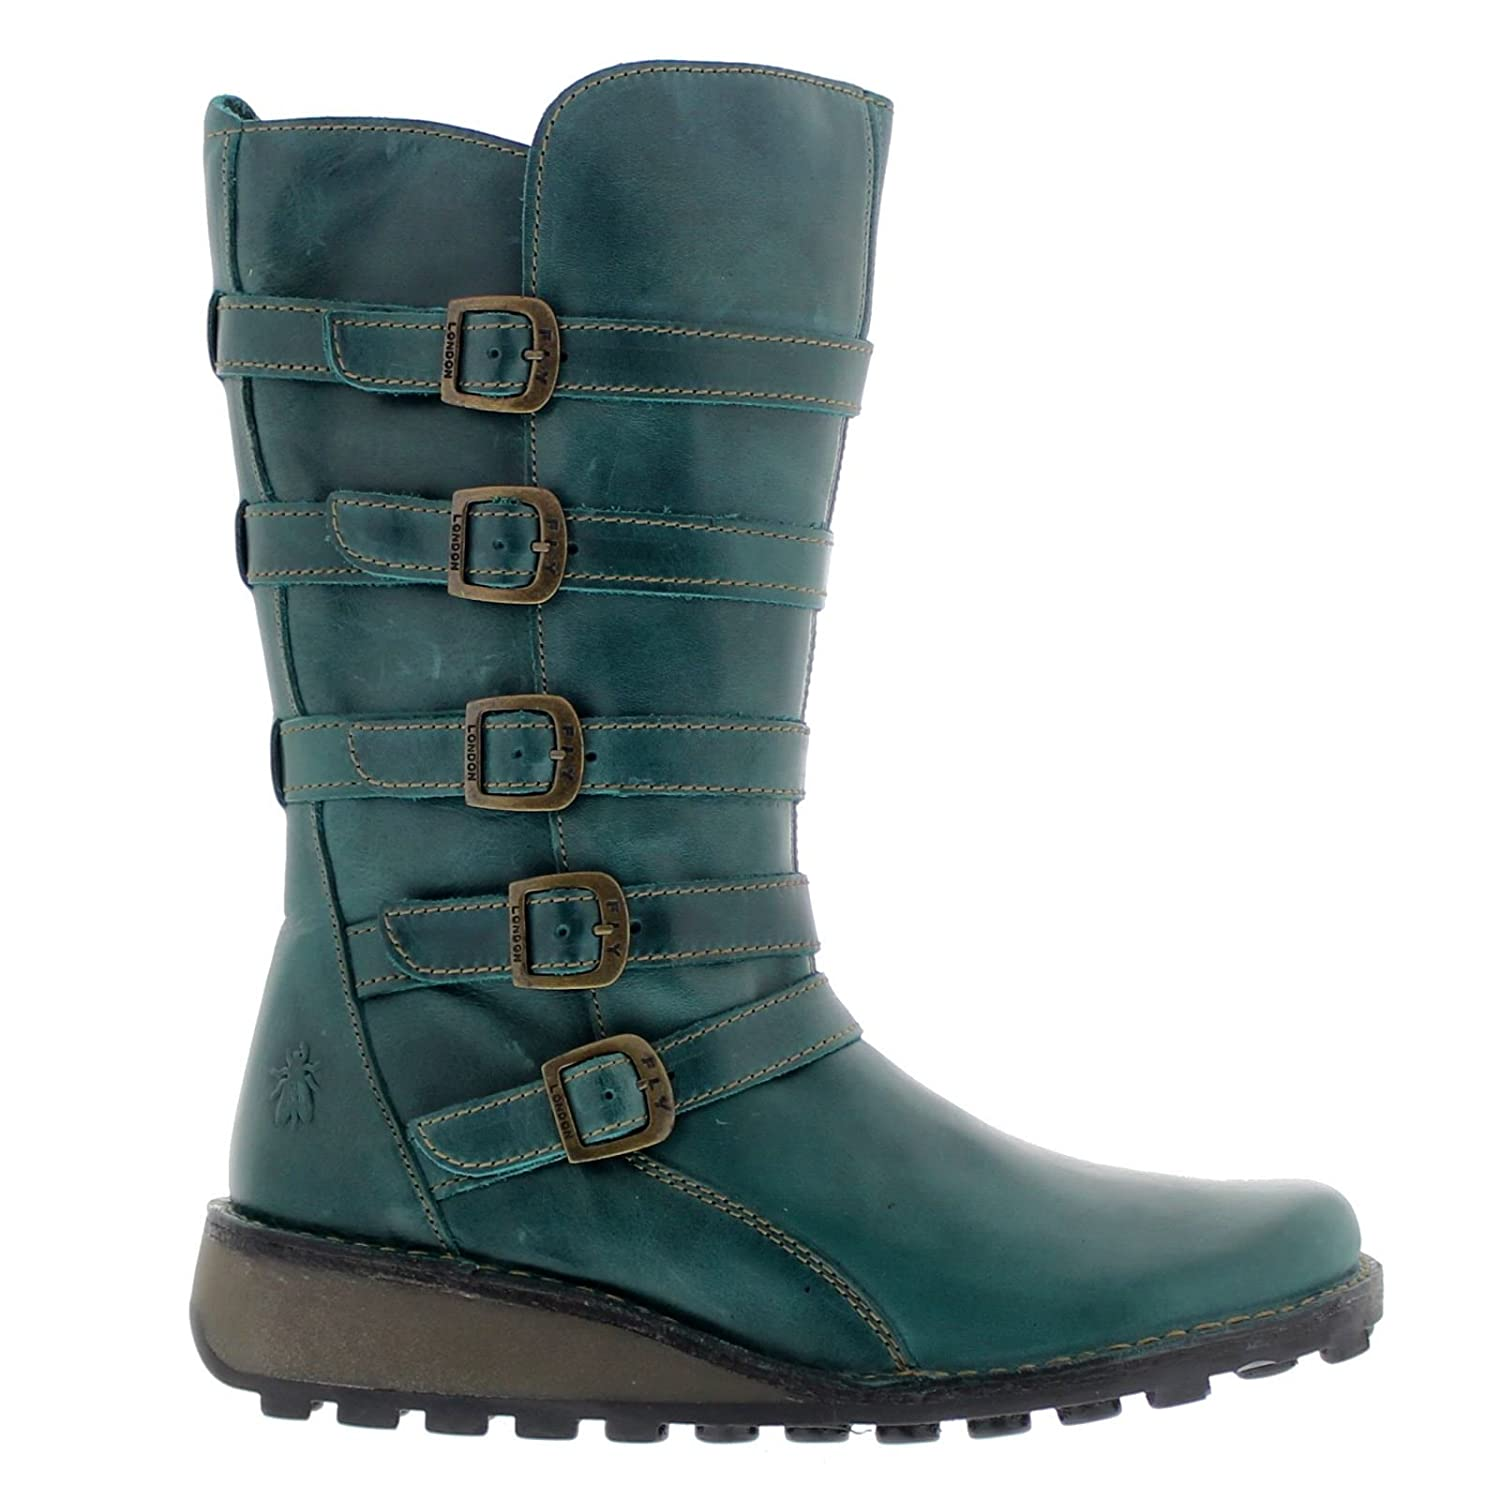 Outlet Very Cheap Womens Came718fly Boots FLY London Sale Countdown Package Sale Best Store To Get Outlet Best Seller Free Shipping Countdown Package YqyO0wM1